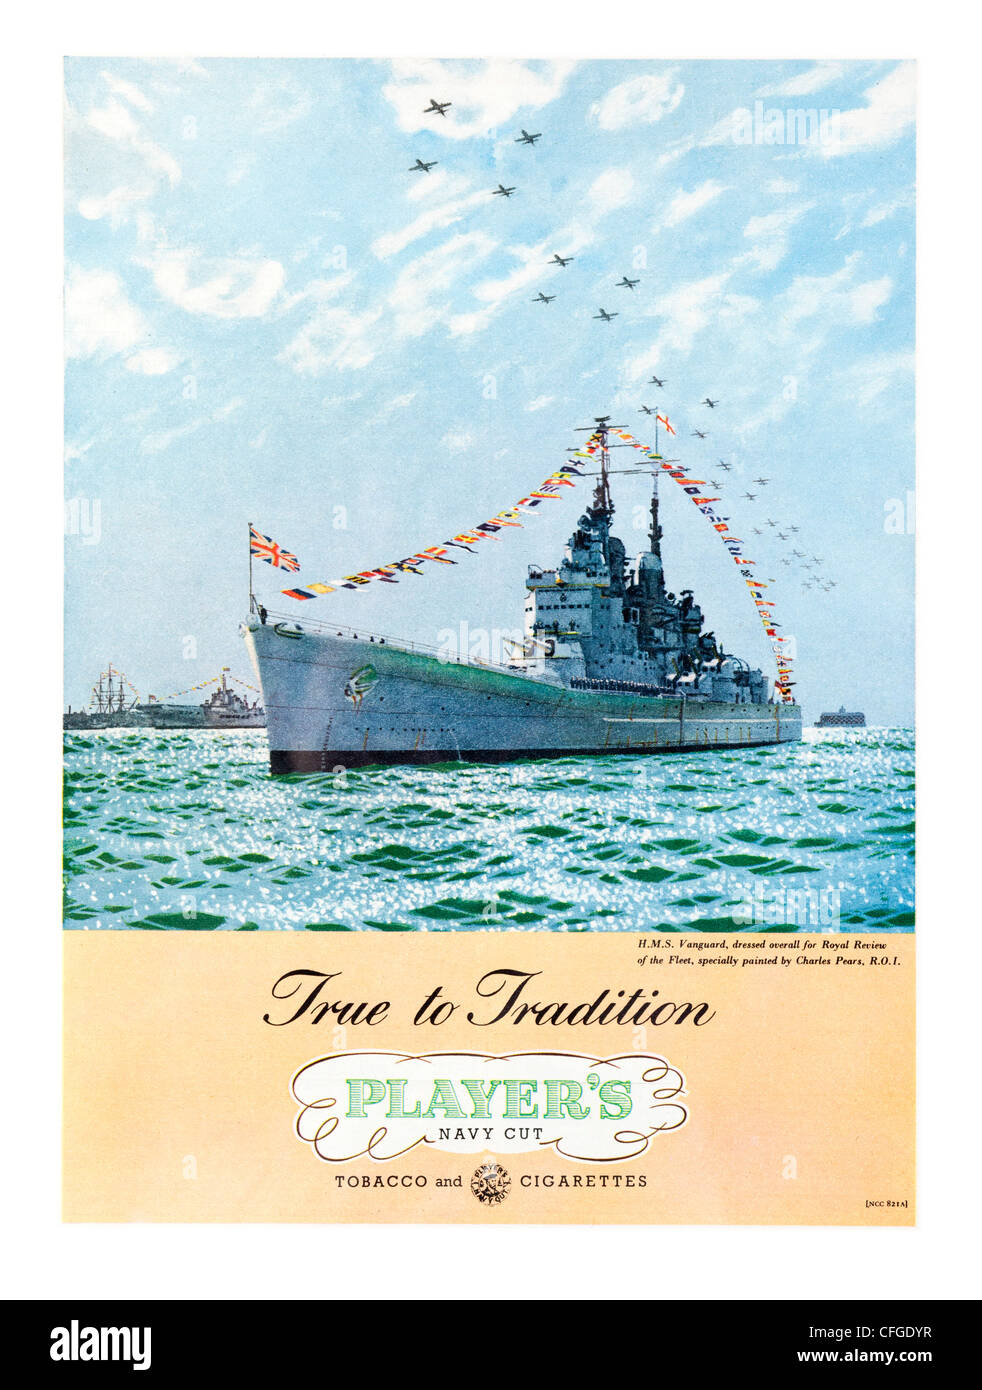 Players Navy Cut cigarettes advert from 1953 - Stock Image